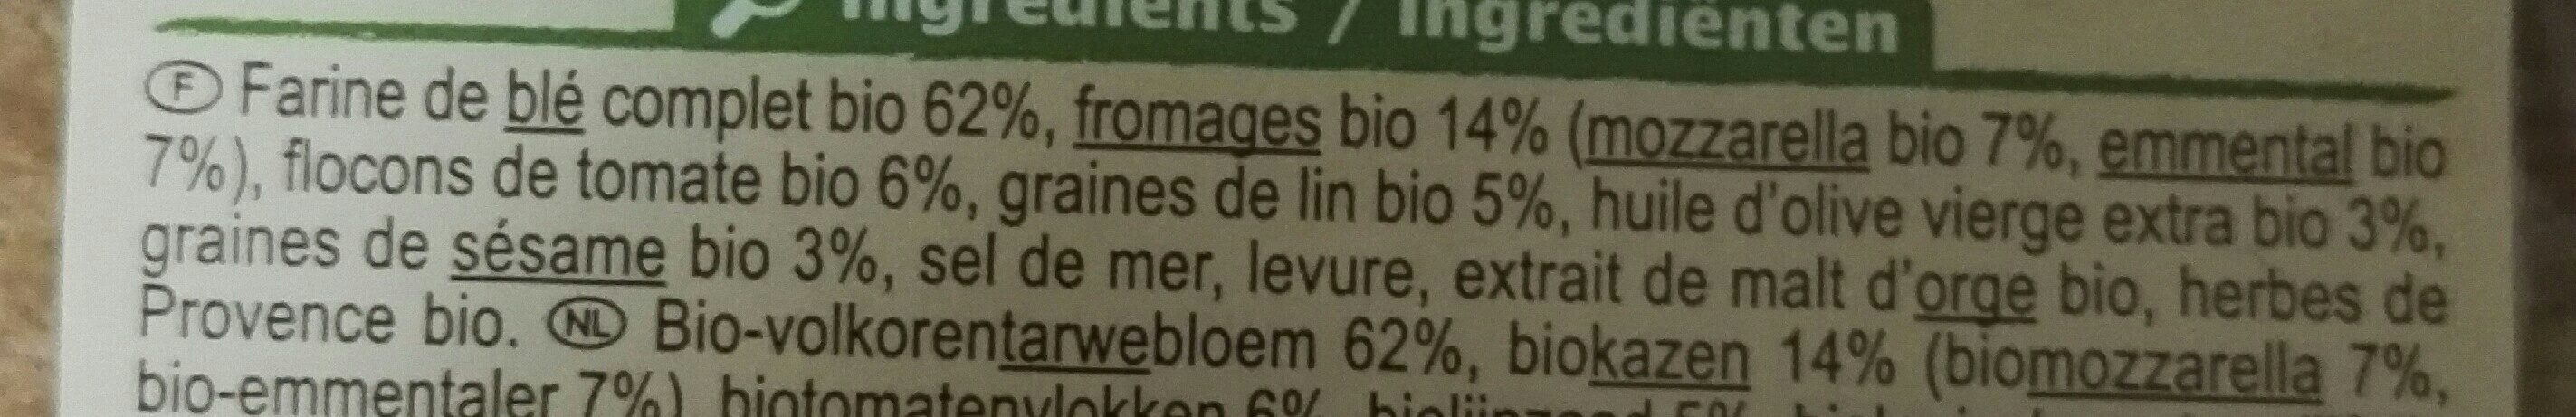 Crackers Fromages Tomate - Ingredients